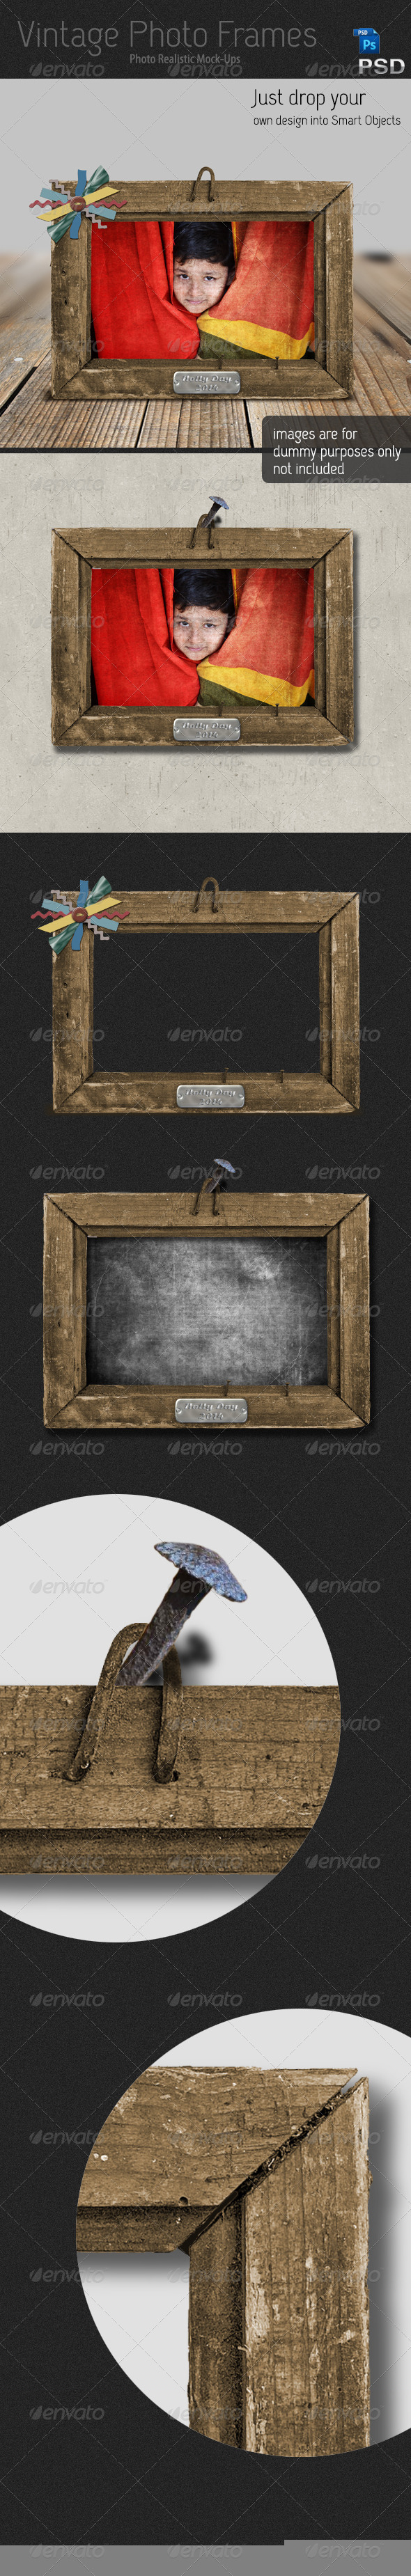 GraphicRiver Vintage Photo Frames 6581684